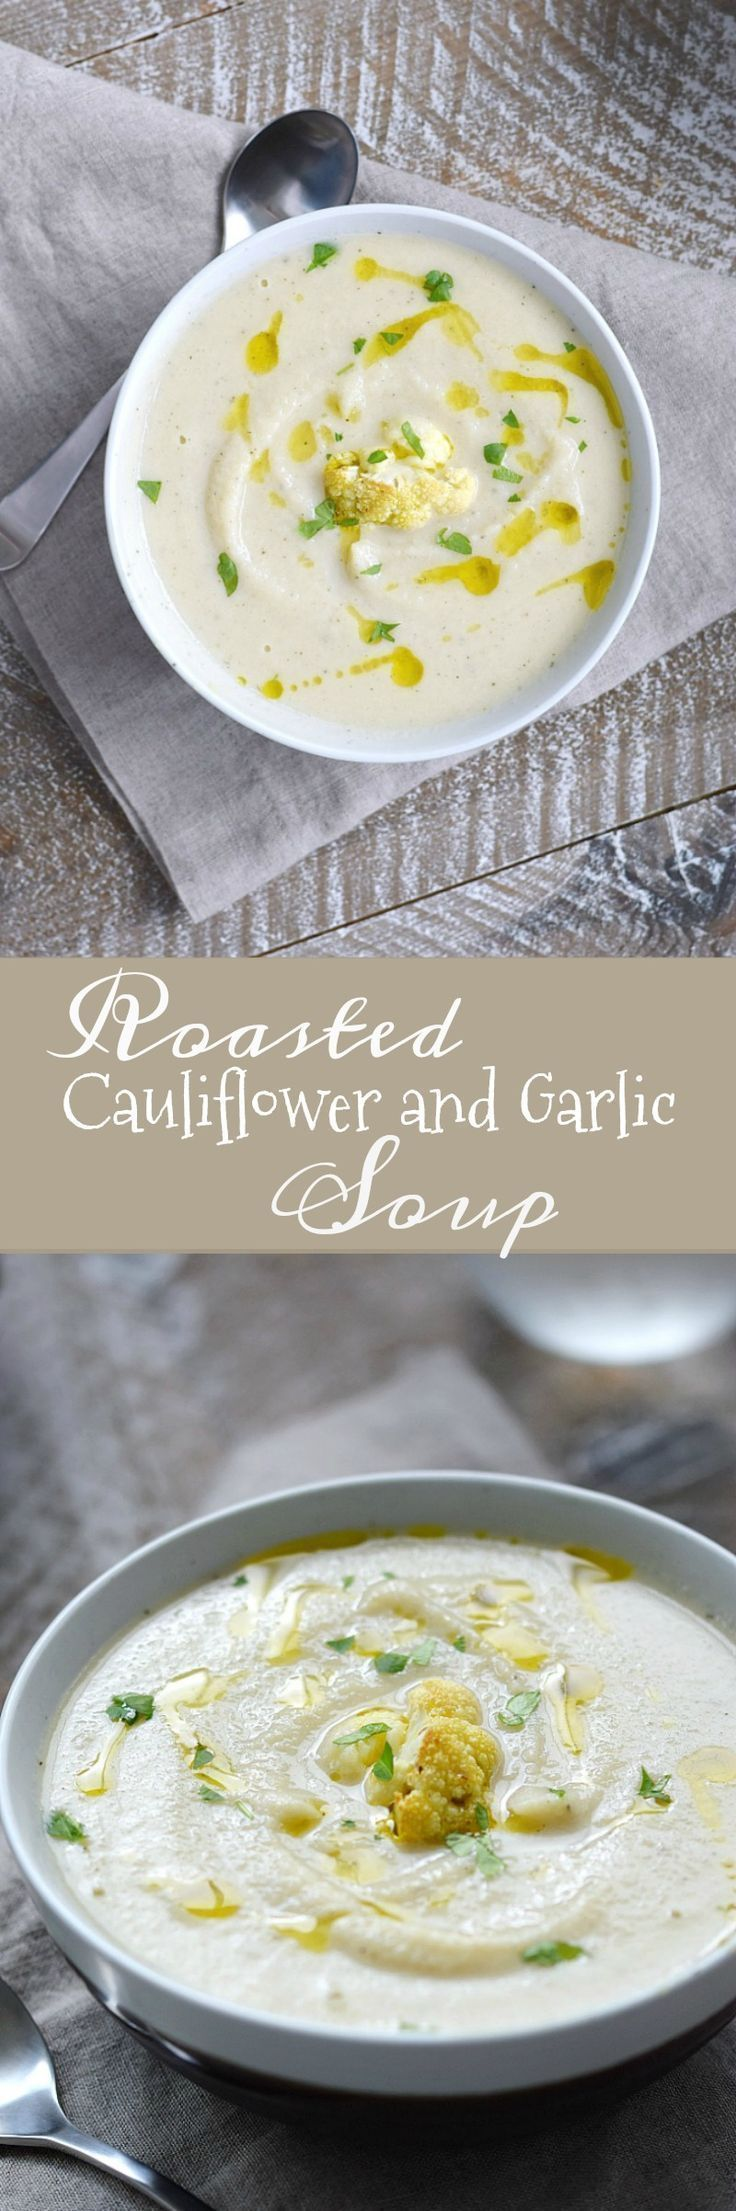 This delicious Roasted Cauliflower and Garlic Soup is dairy-free, Whole 30 and Paleo compliant and vegan